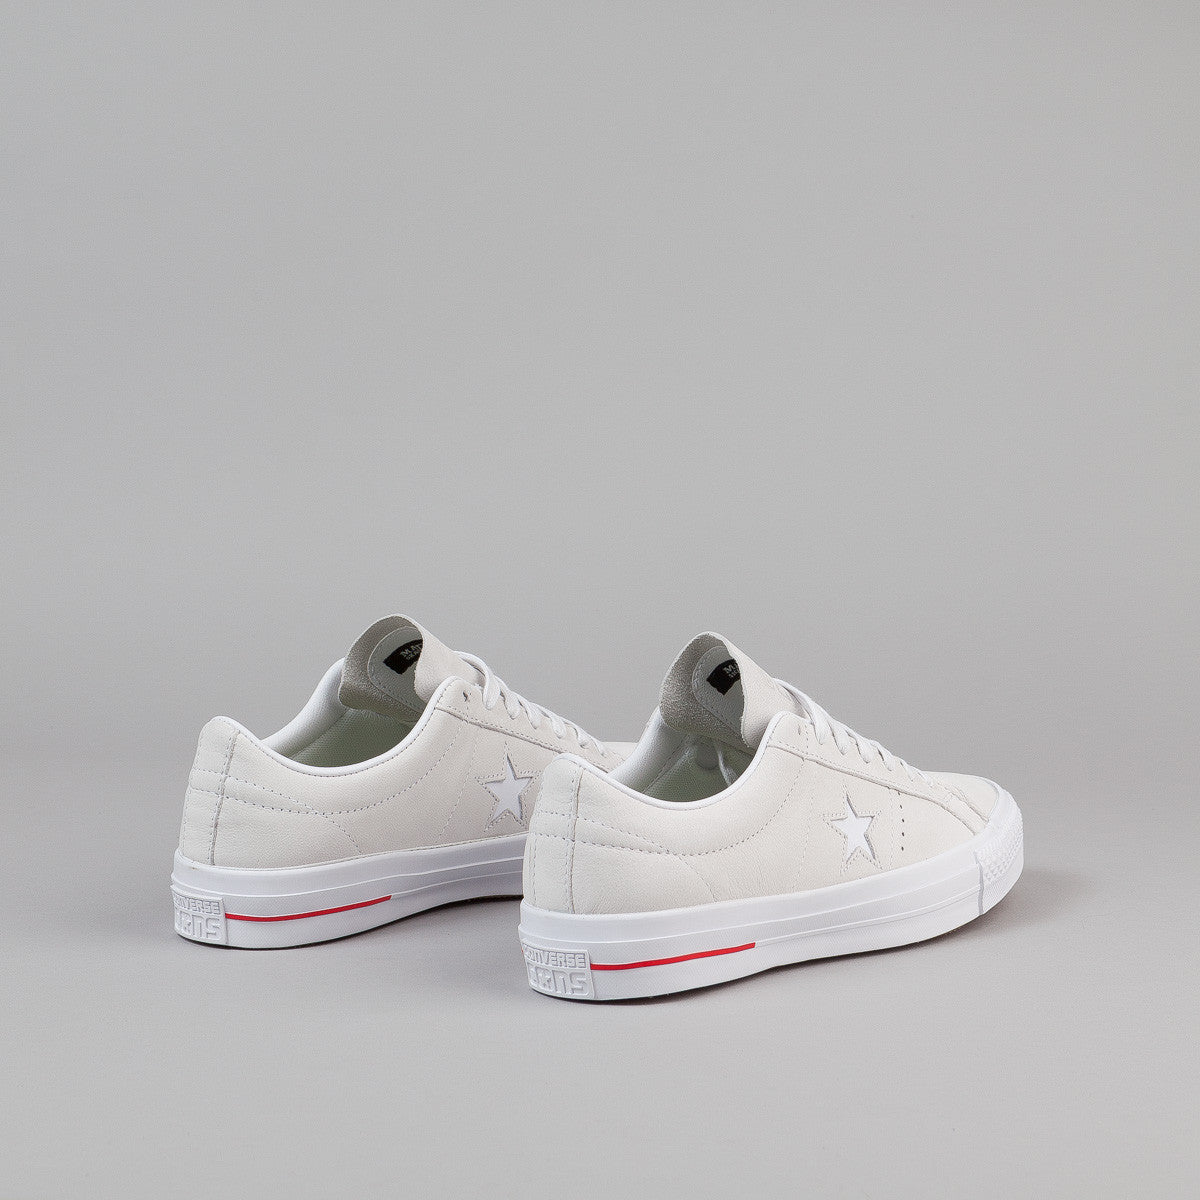 Converse One Star Pro Leather Shoes - White